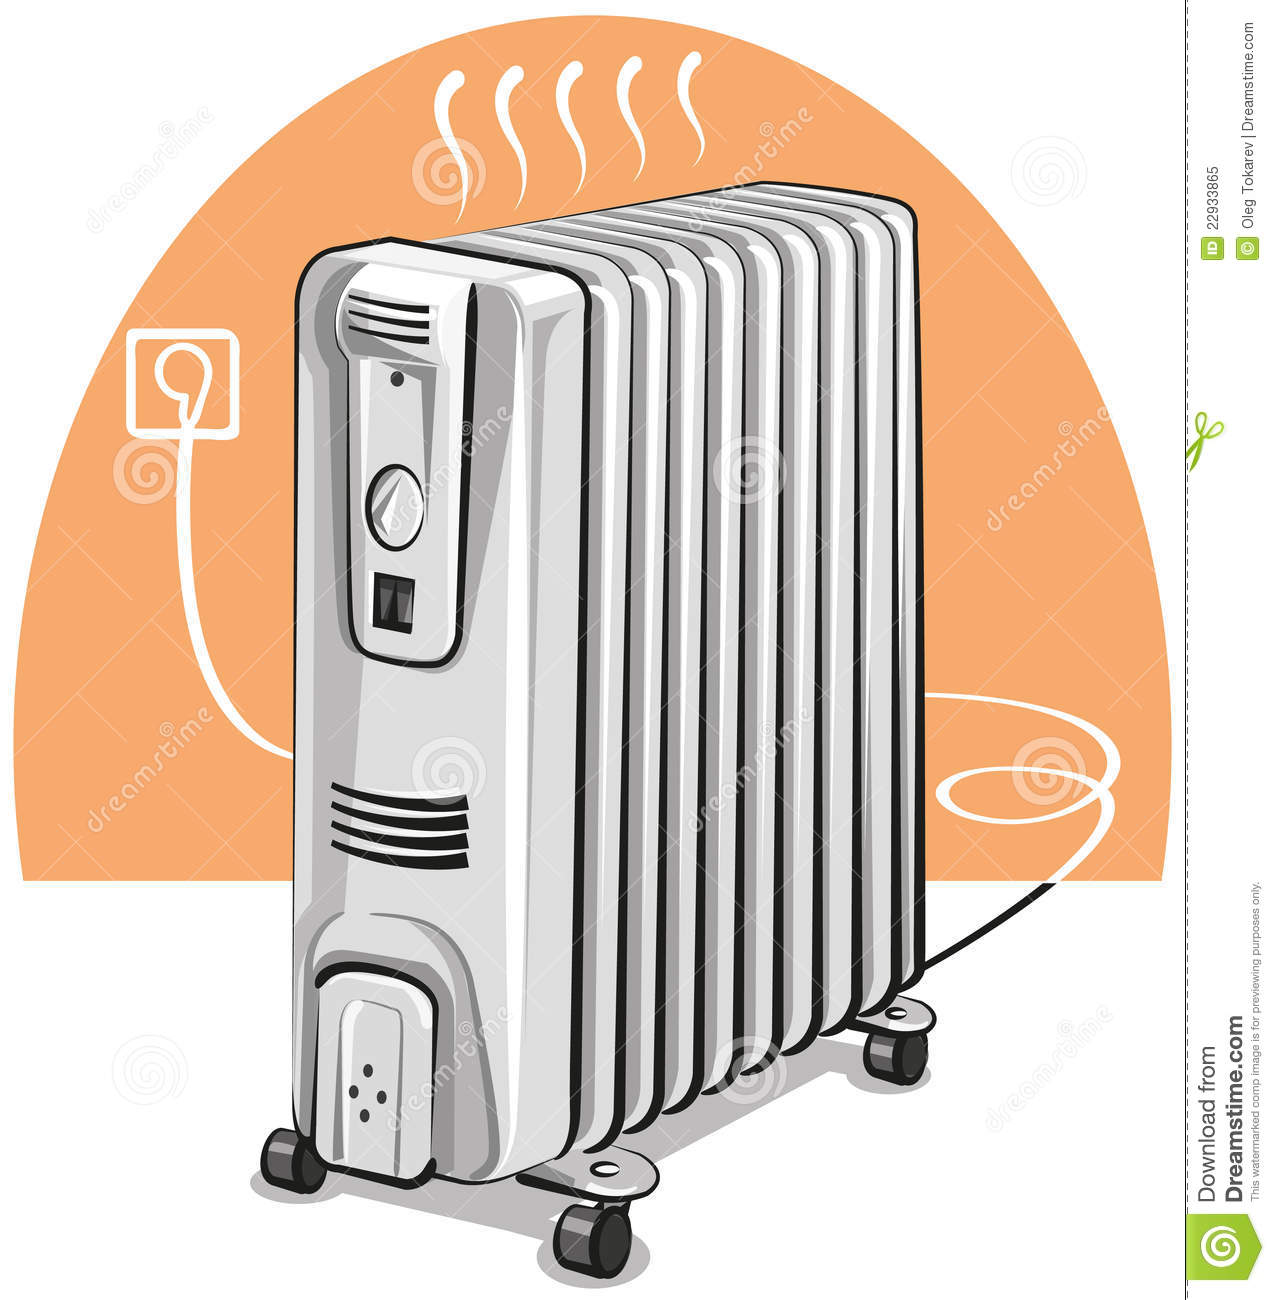 Electric Oil Heater Royalty Free Stock Photo Image 22933865 #BD5A0E